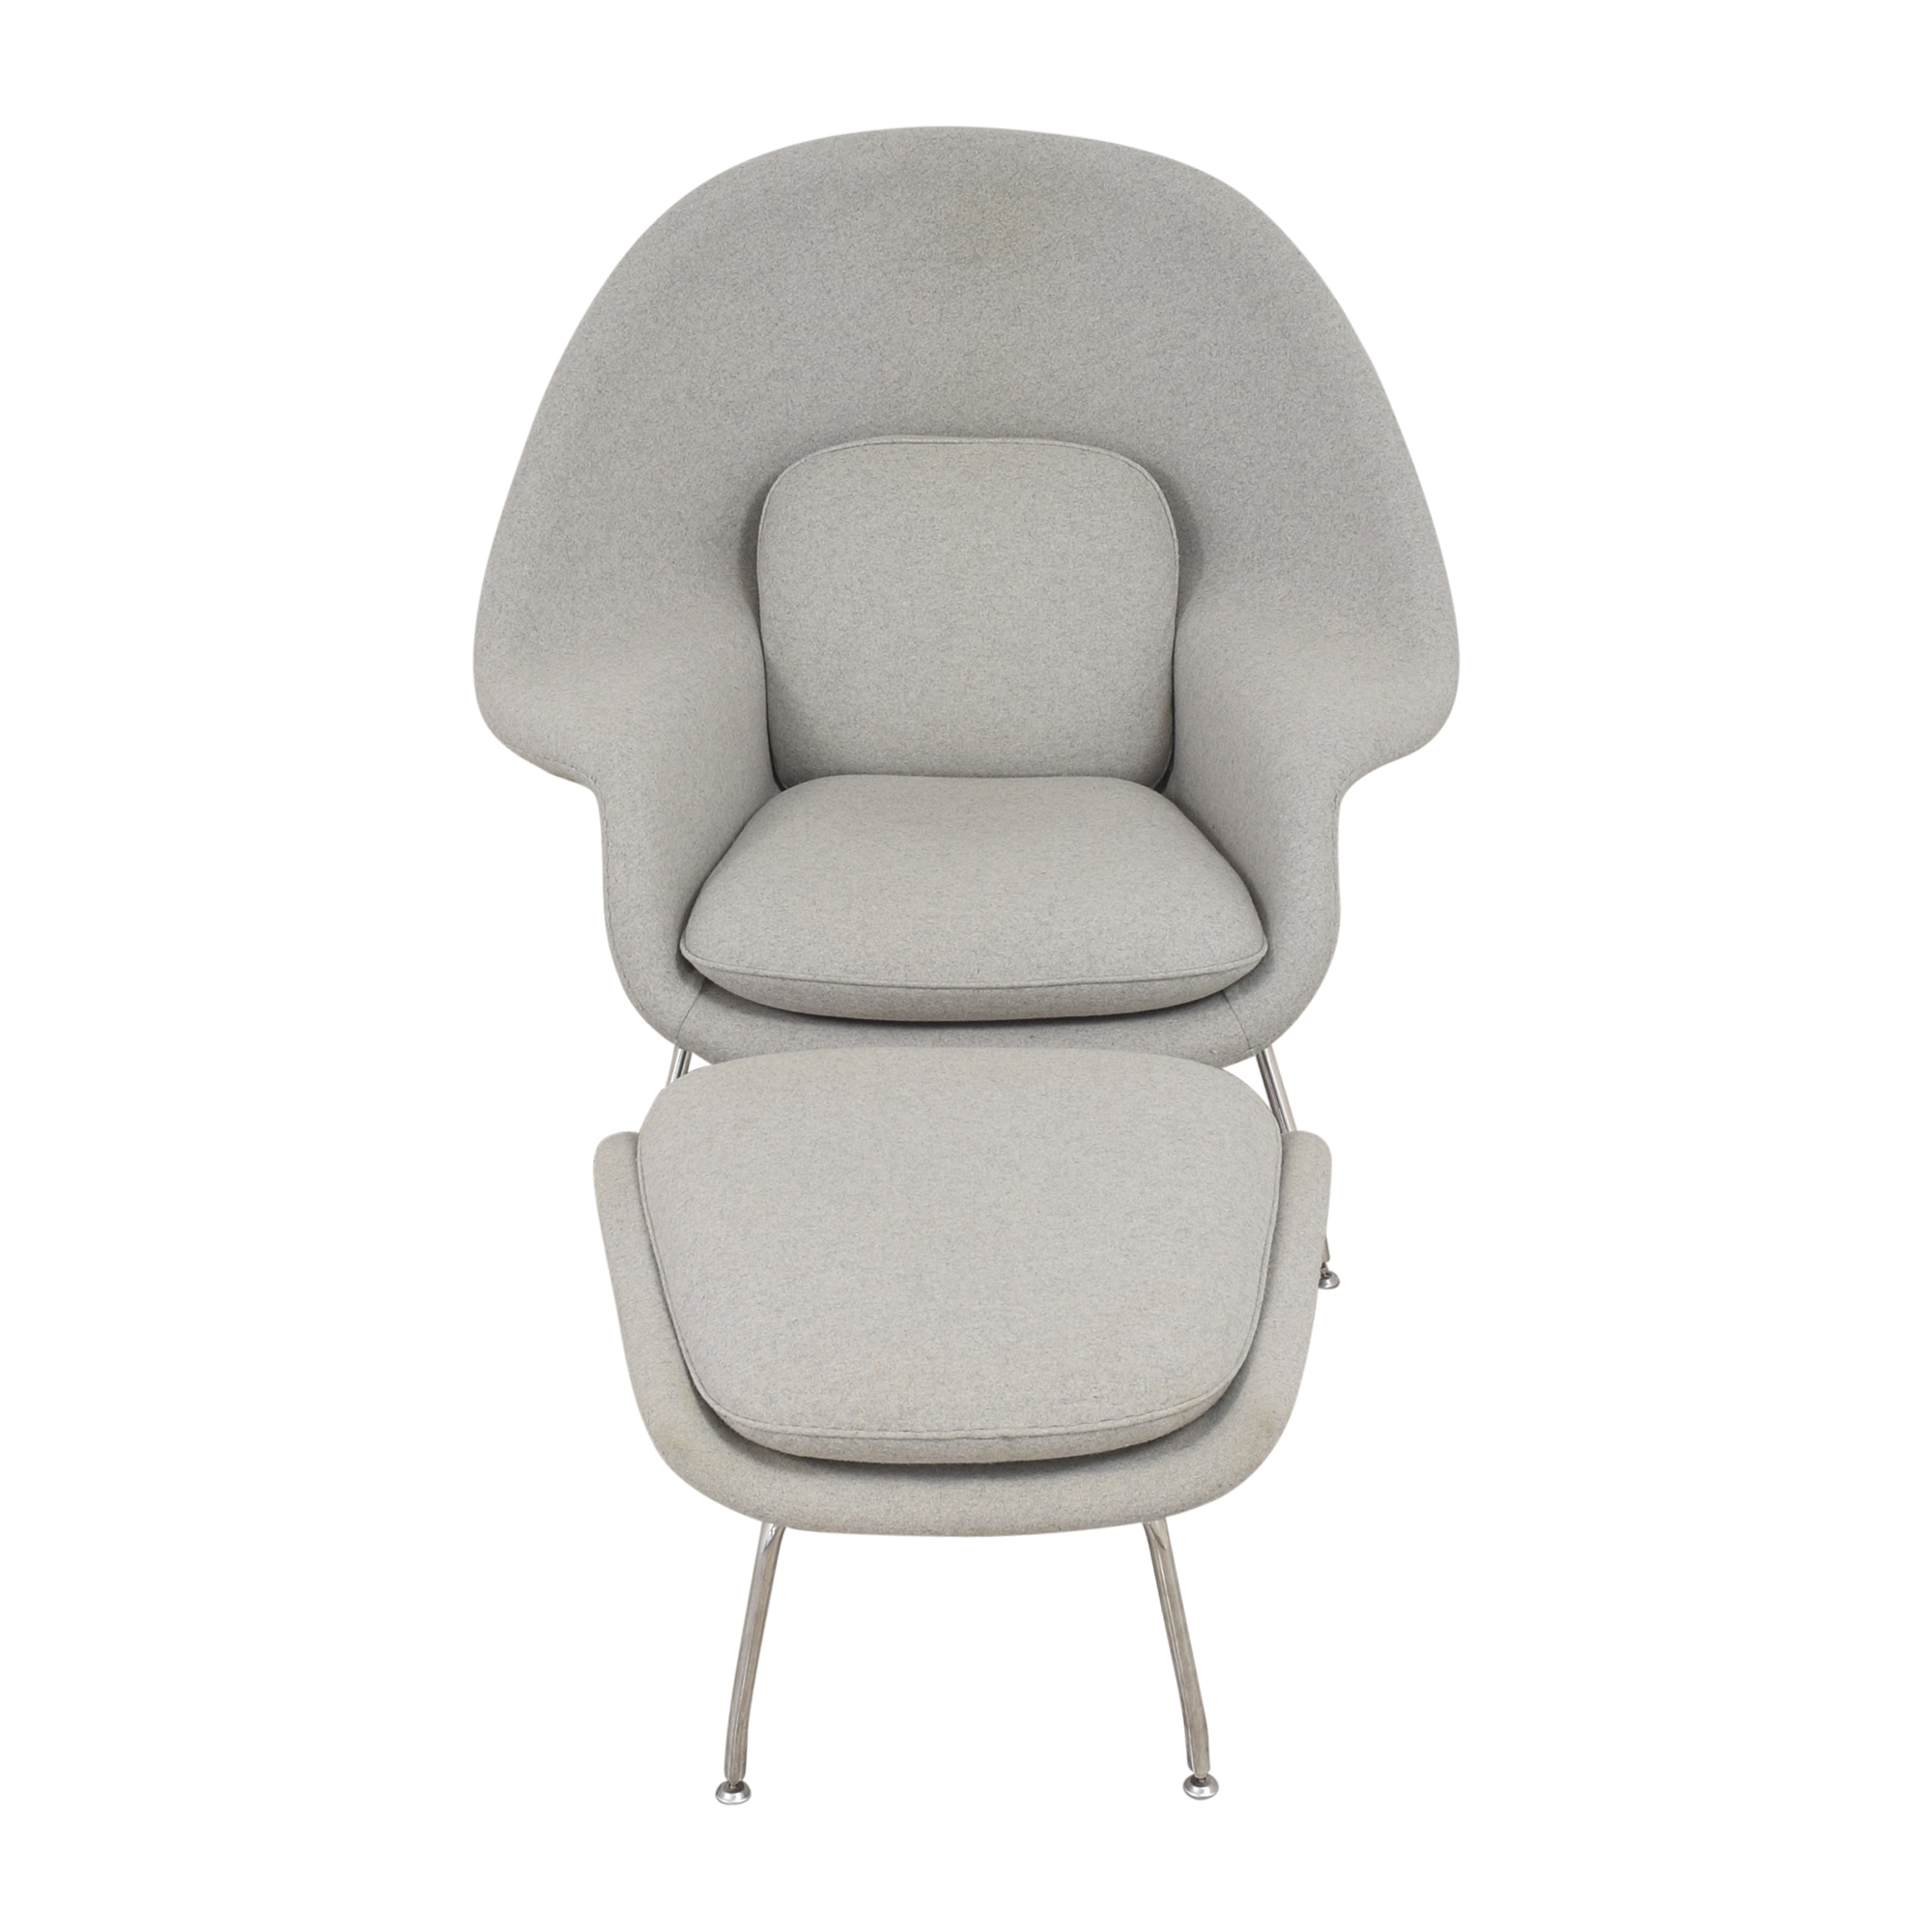 France and Son France and Son Womb Chair with Ottoman for sale